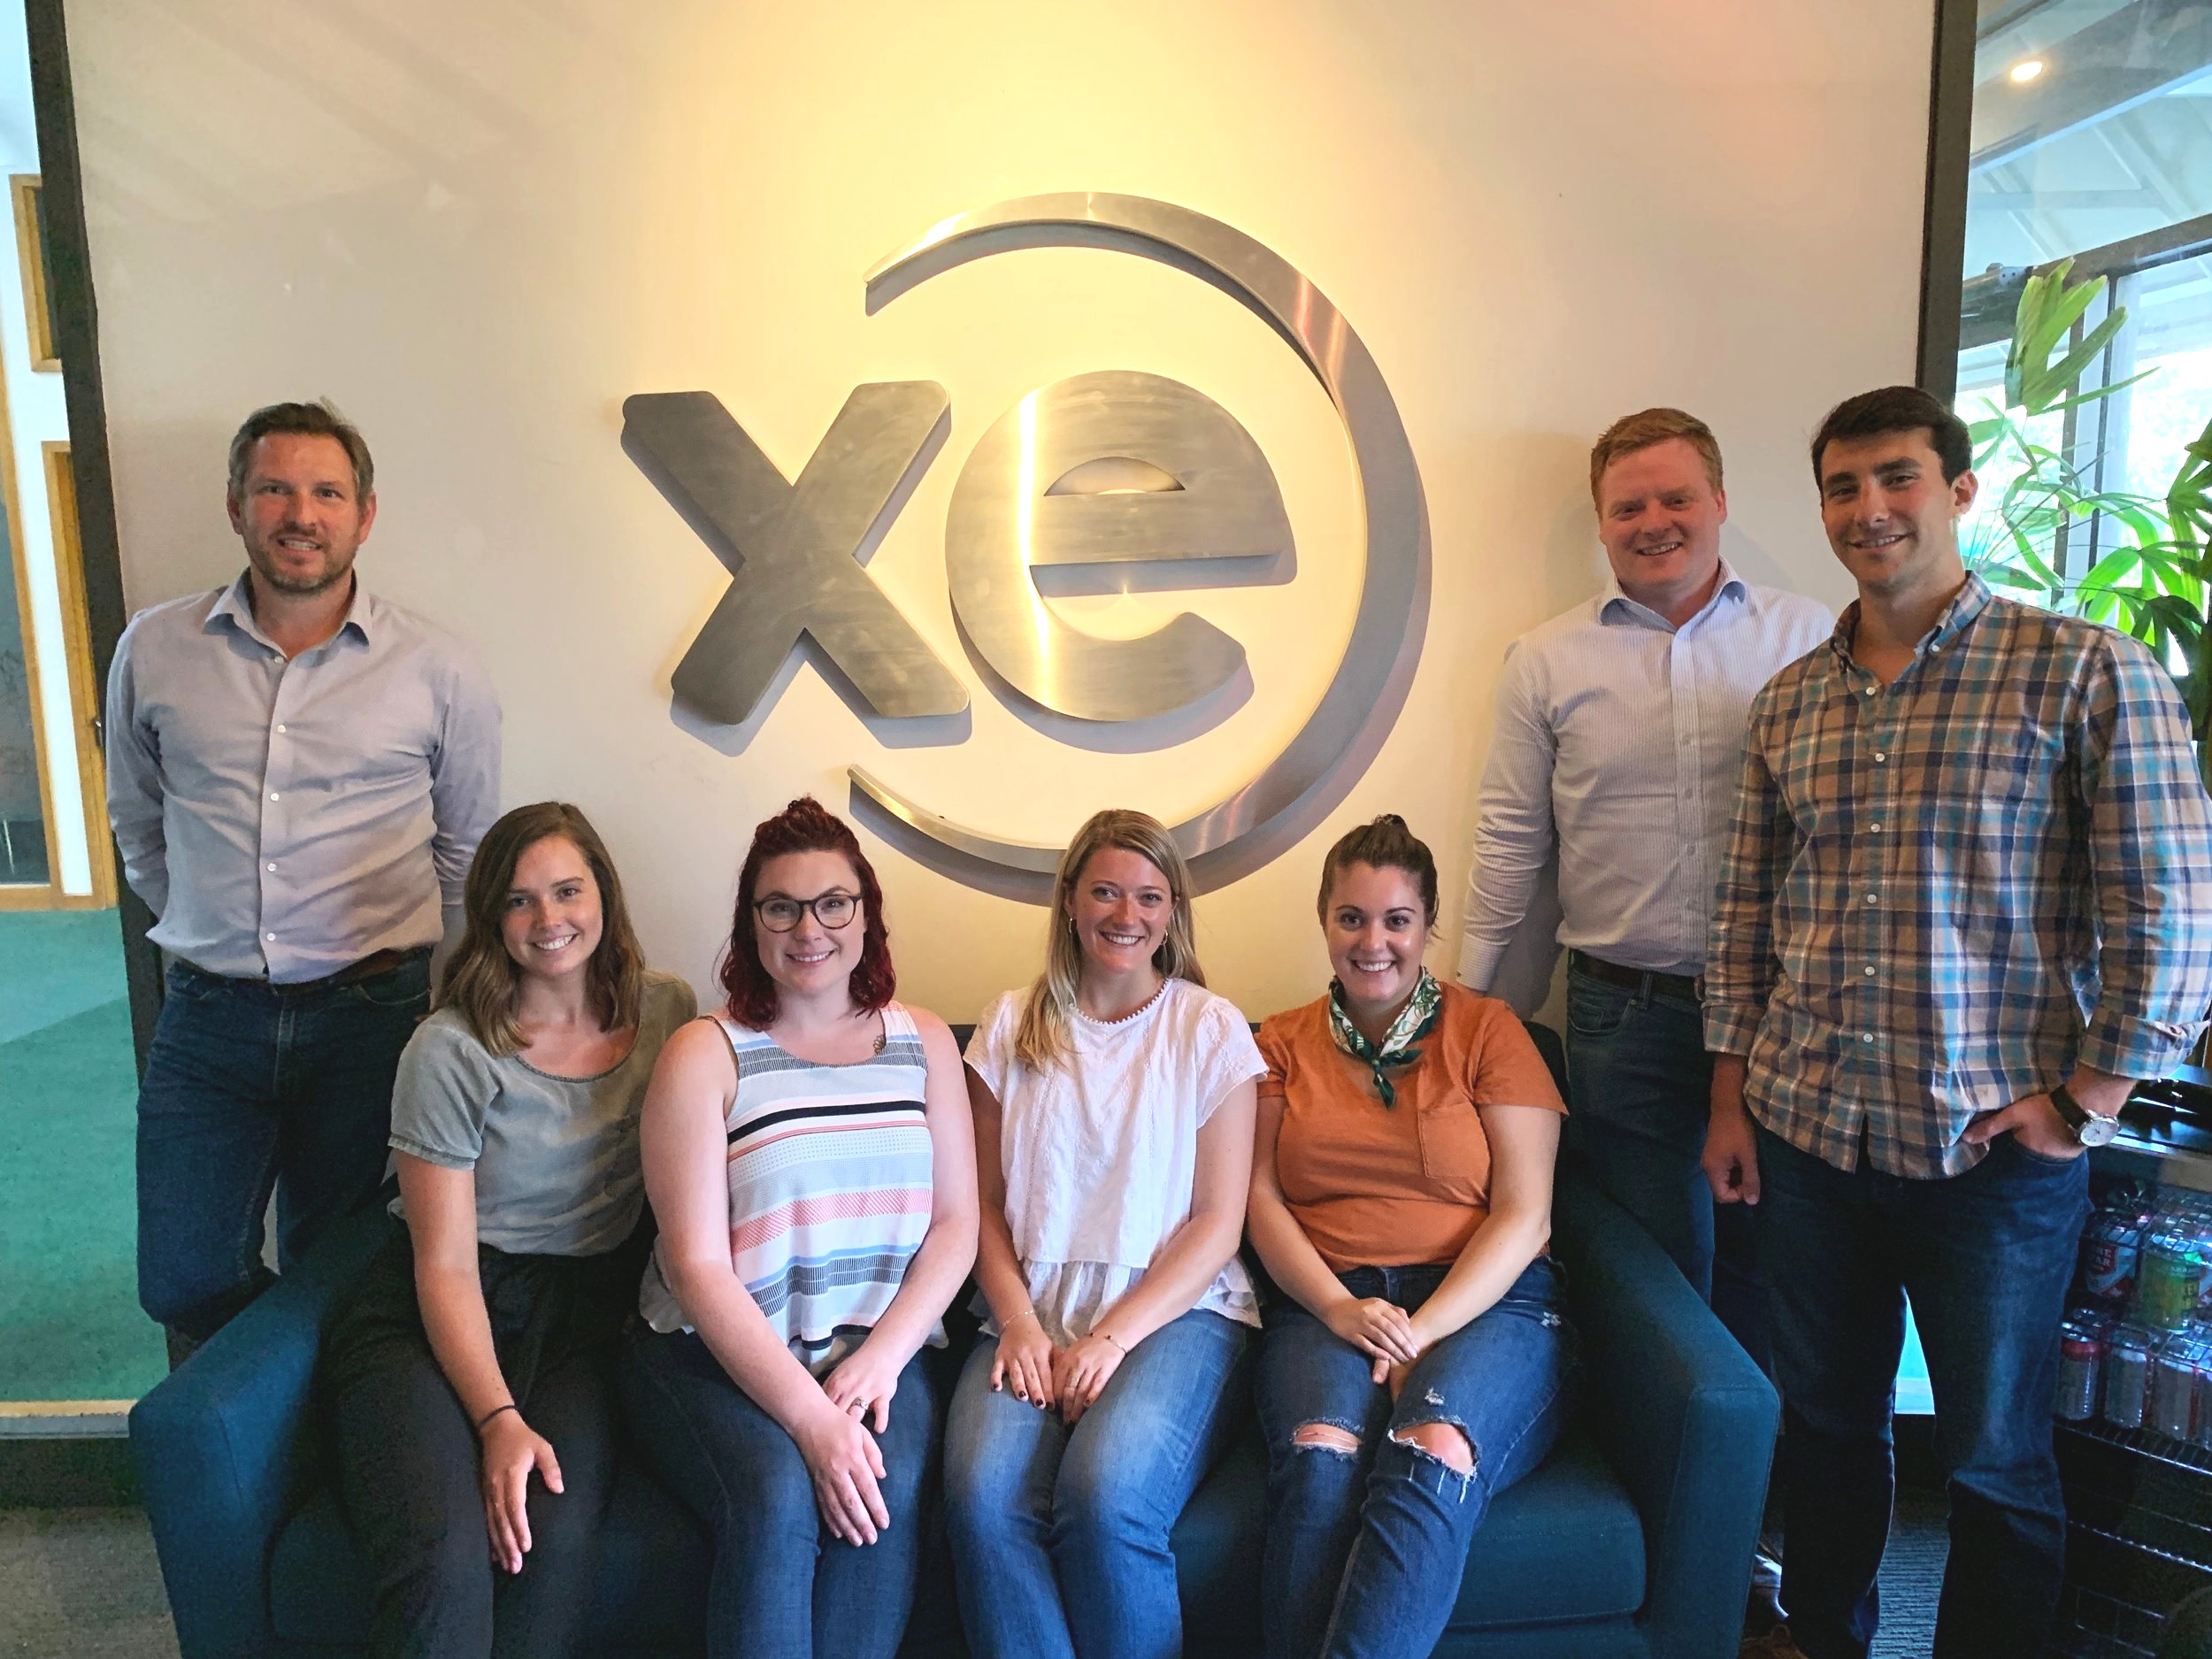 The XE team in their new Austin offices.